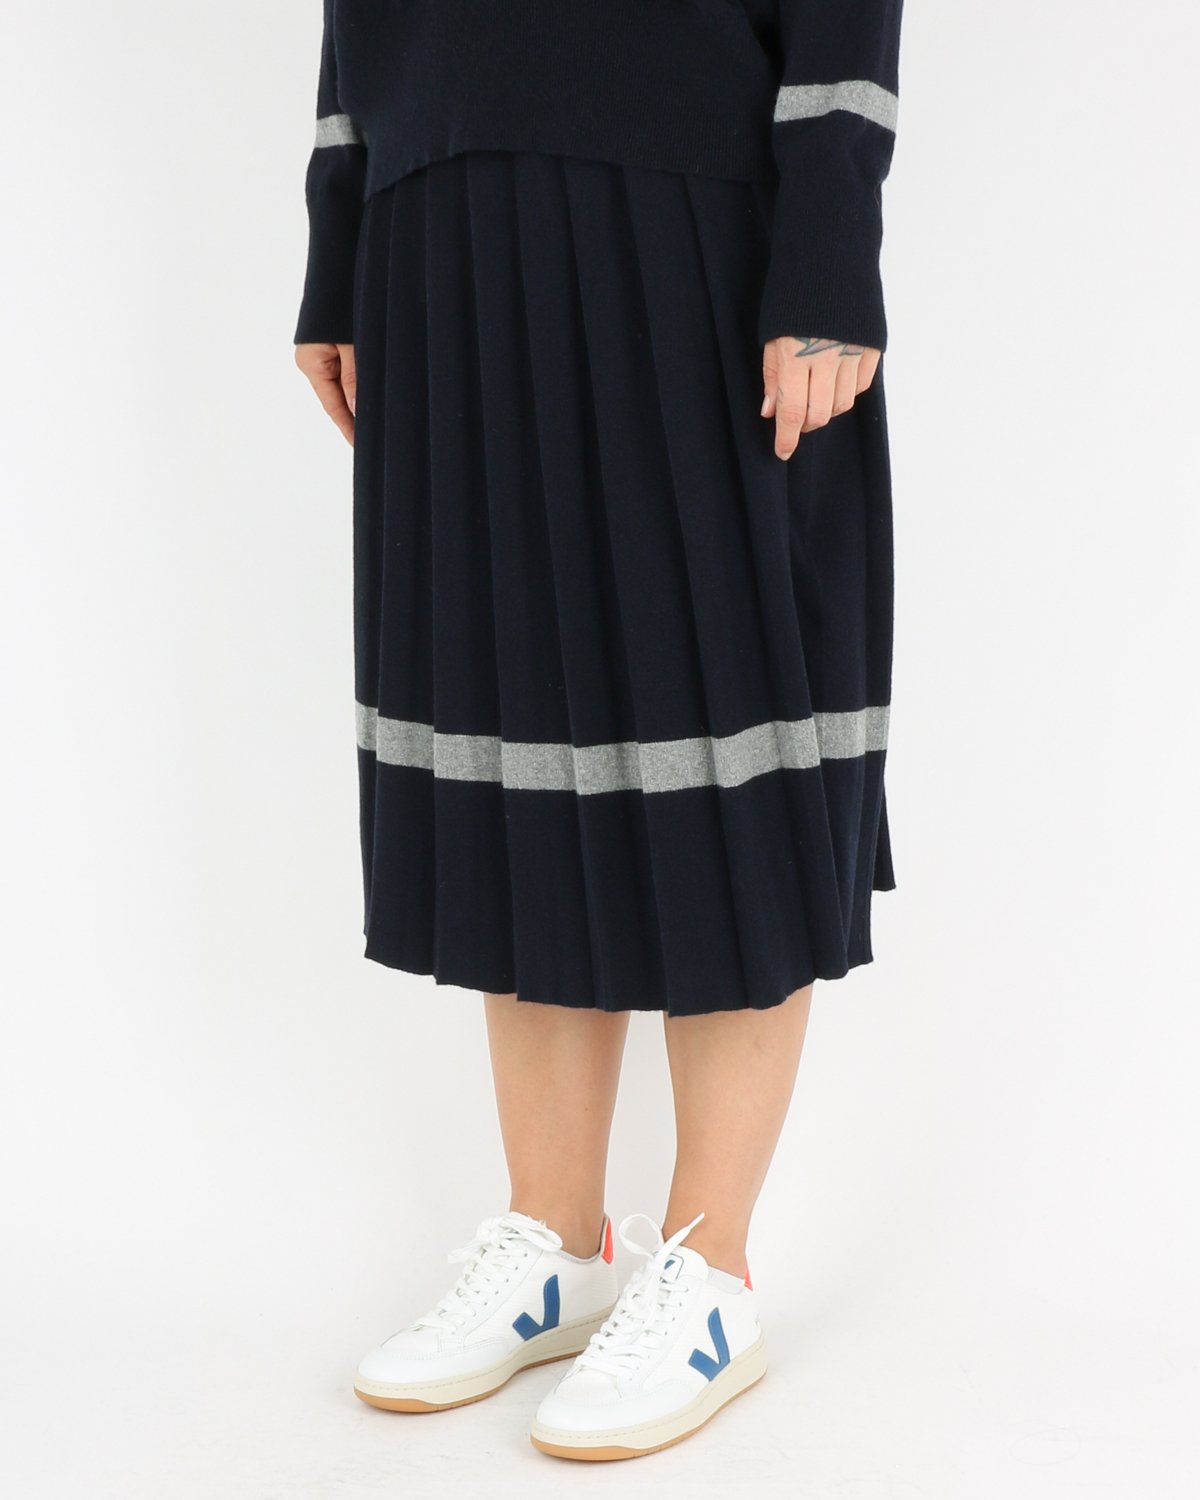 libertine libertine_guide skirt_dark navy grey melange_2_3